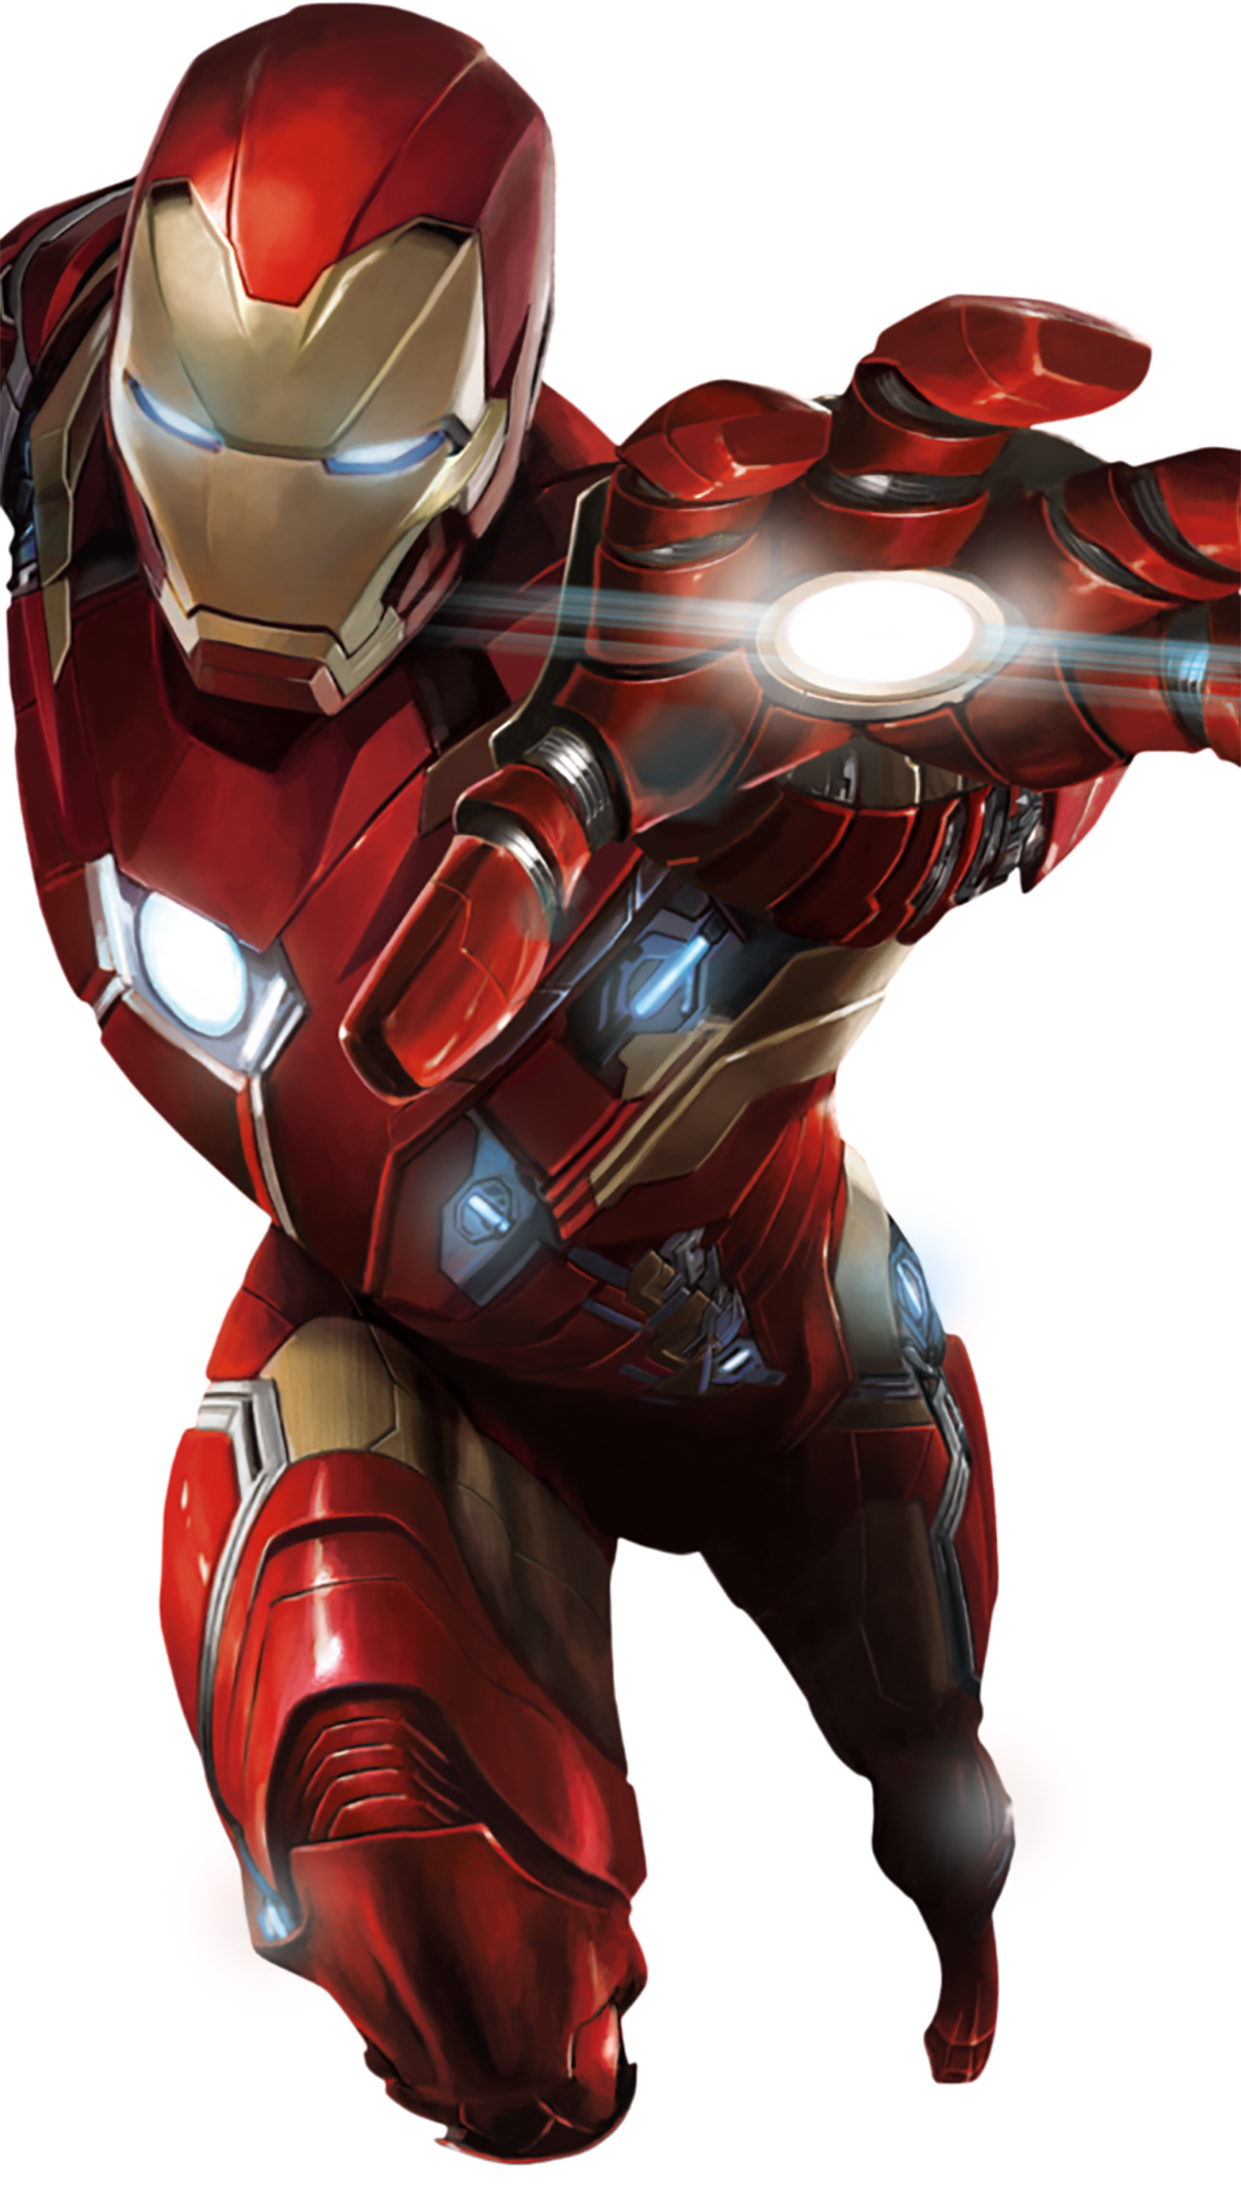 Iron Man Flying 3Wallpapers iPhone Parallax Iron Man : Flying